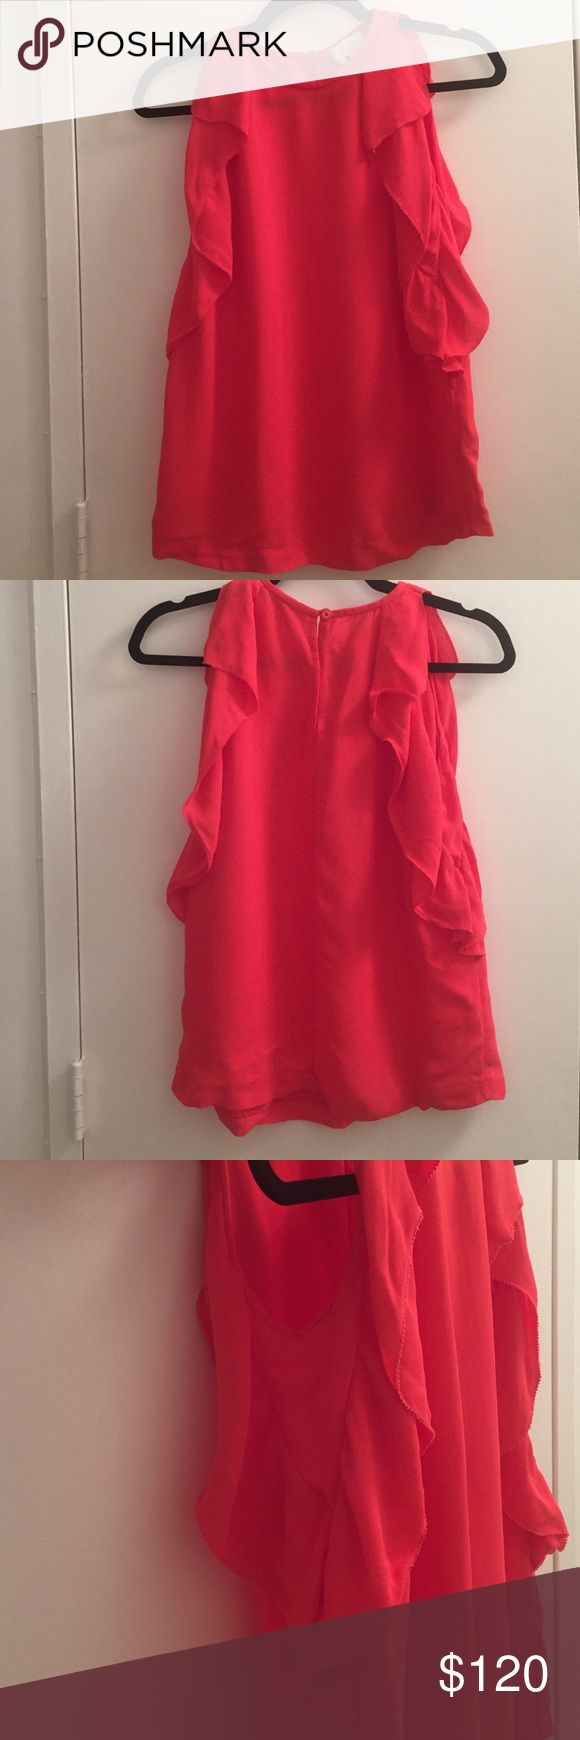 Kate spade chiffon ruffle top Button closure on the back kate spade Tops Blouses